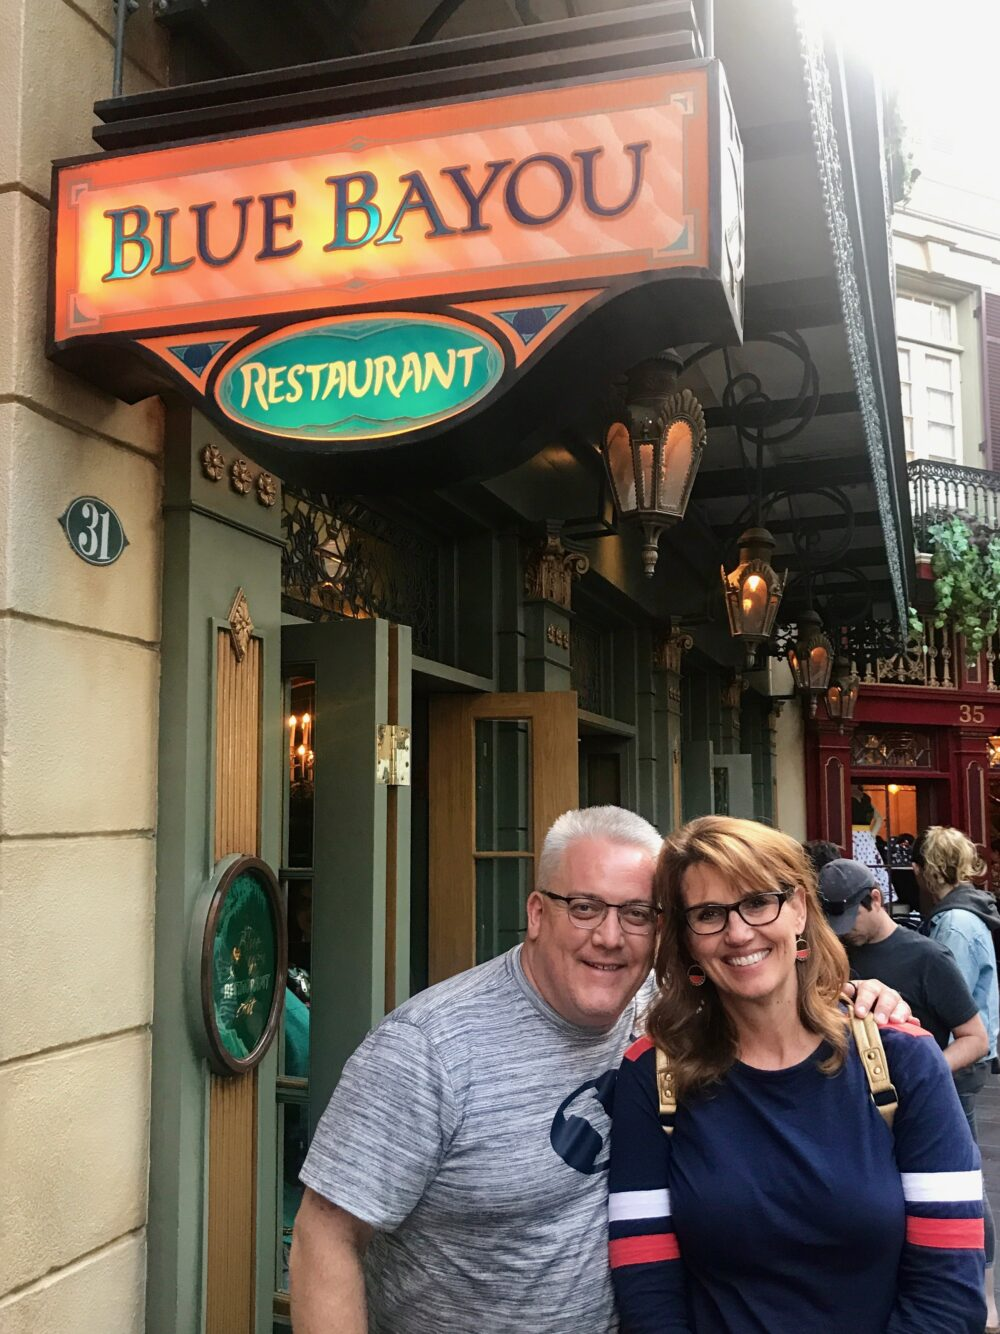 Todd and Echo at the Blue Bayou Restaurant in Disneyland